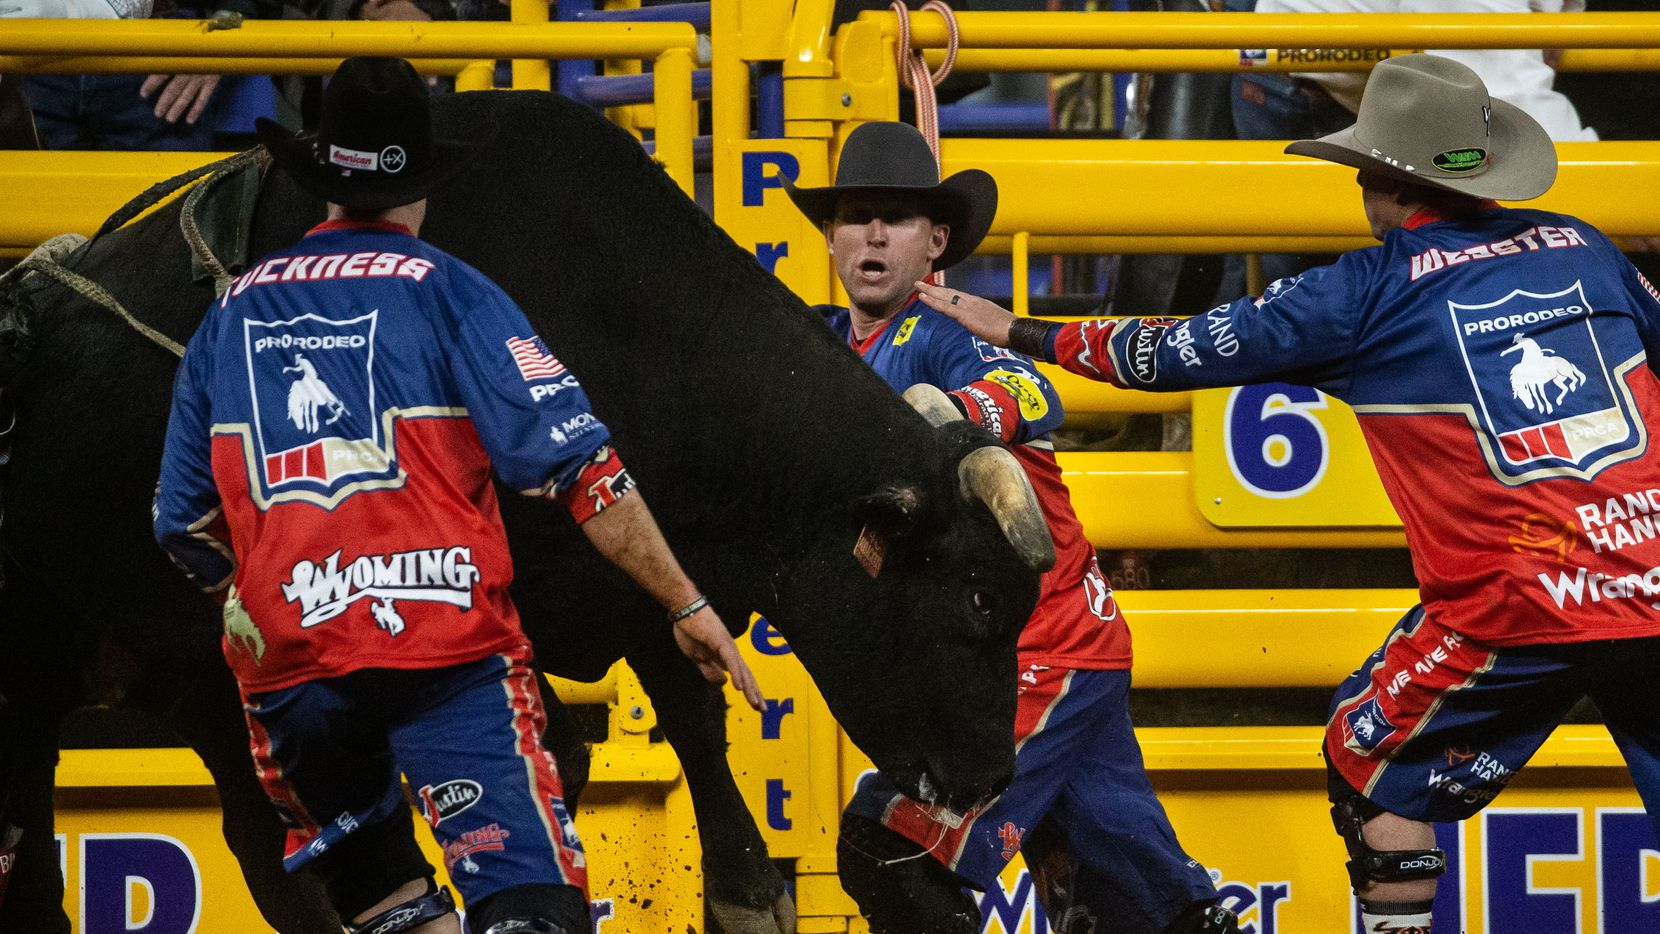 From left, bullfighters Dusty Tuckness, Nate Jestes and Cody Webster redirect Audacious the bull during the bull riding event on the sixth night of the National Finals Rodeo at Globe Life Field in Arlington, Texas, on Tuesday, Dec. 10, 2020.